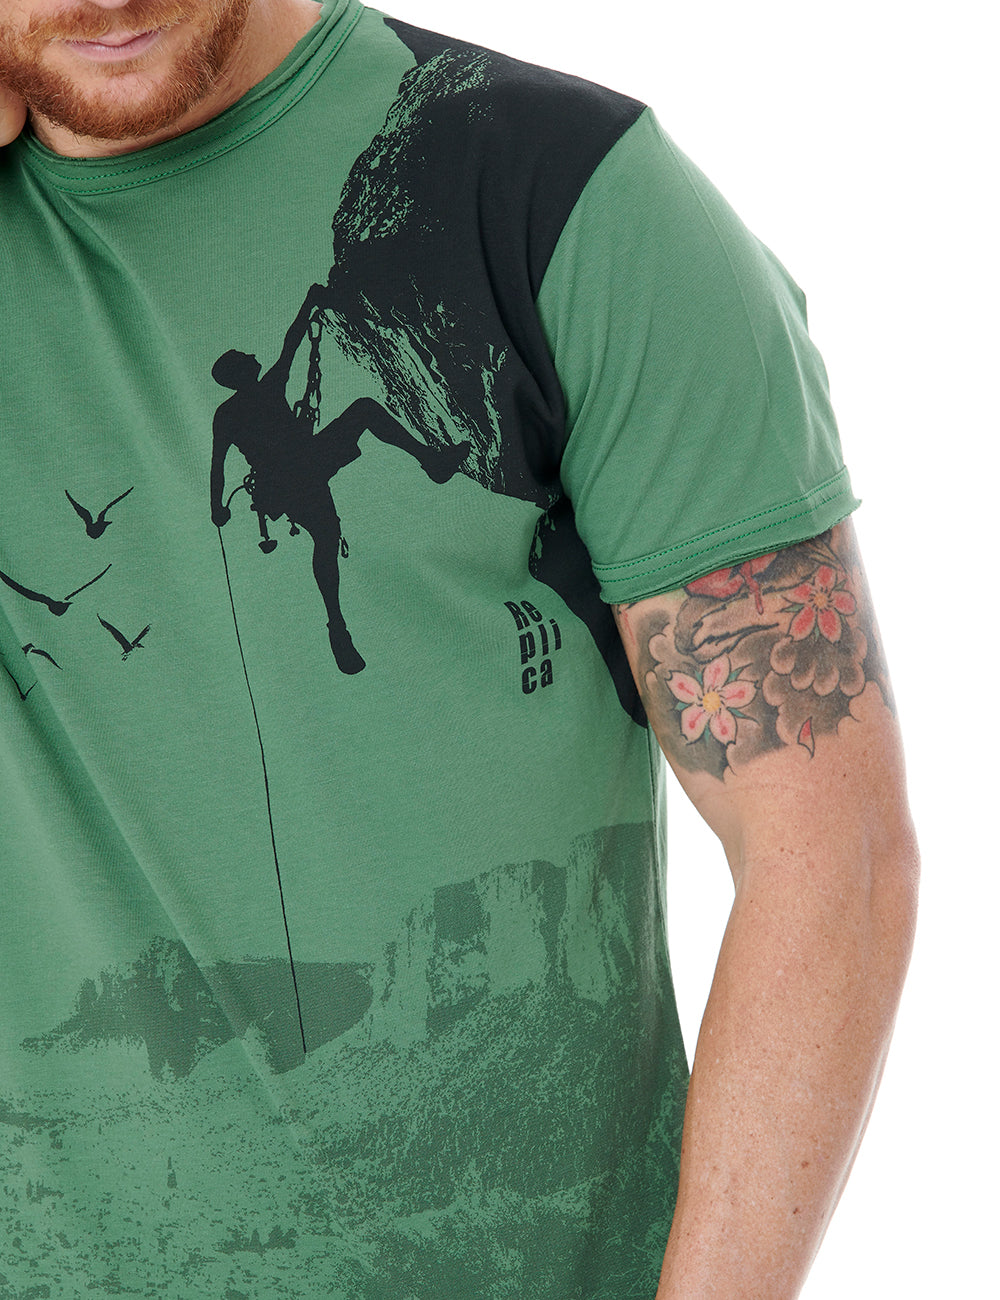 Climb tshirt Replica Greece Green